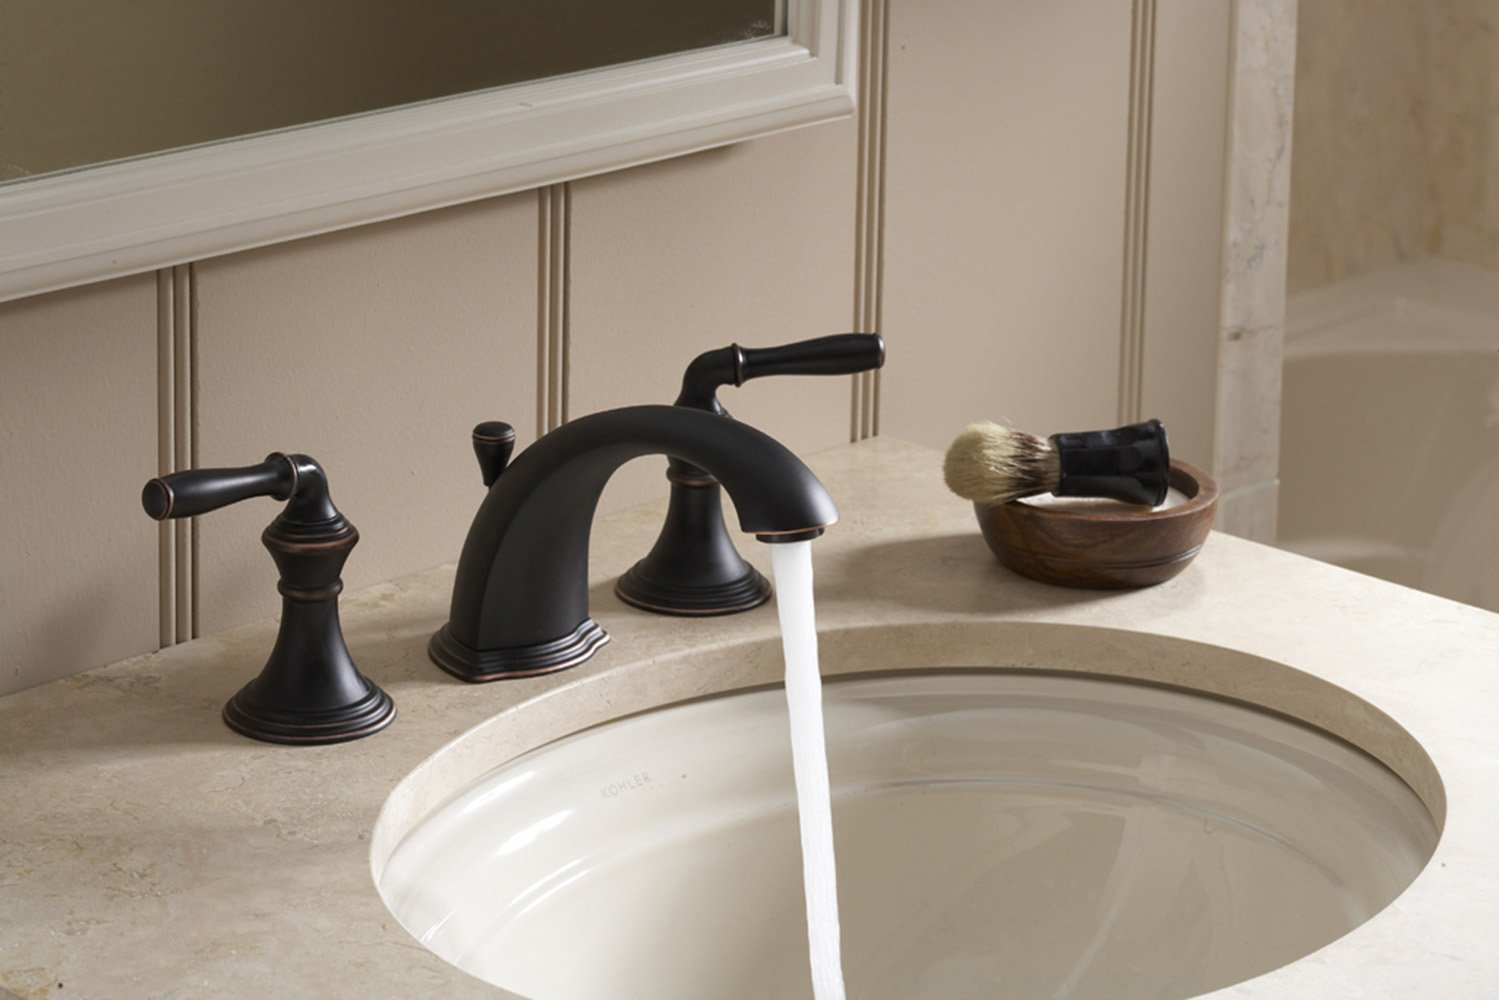 KOHLER K 394 4 SN Devonshire Widespread Bathroom Sink Faucet, Vibrant  Polished Nickel     Amazon.com